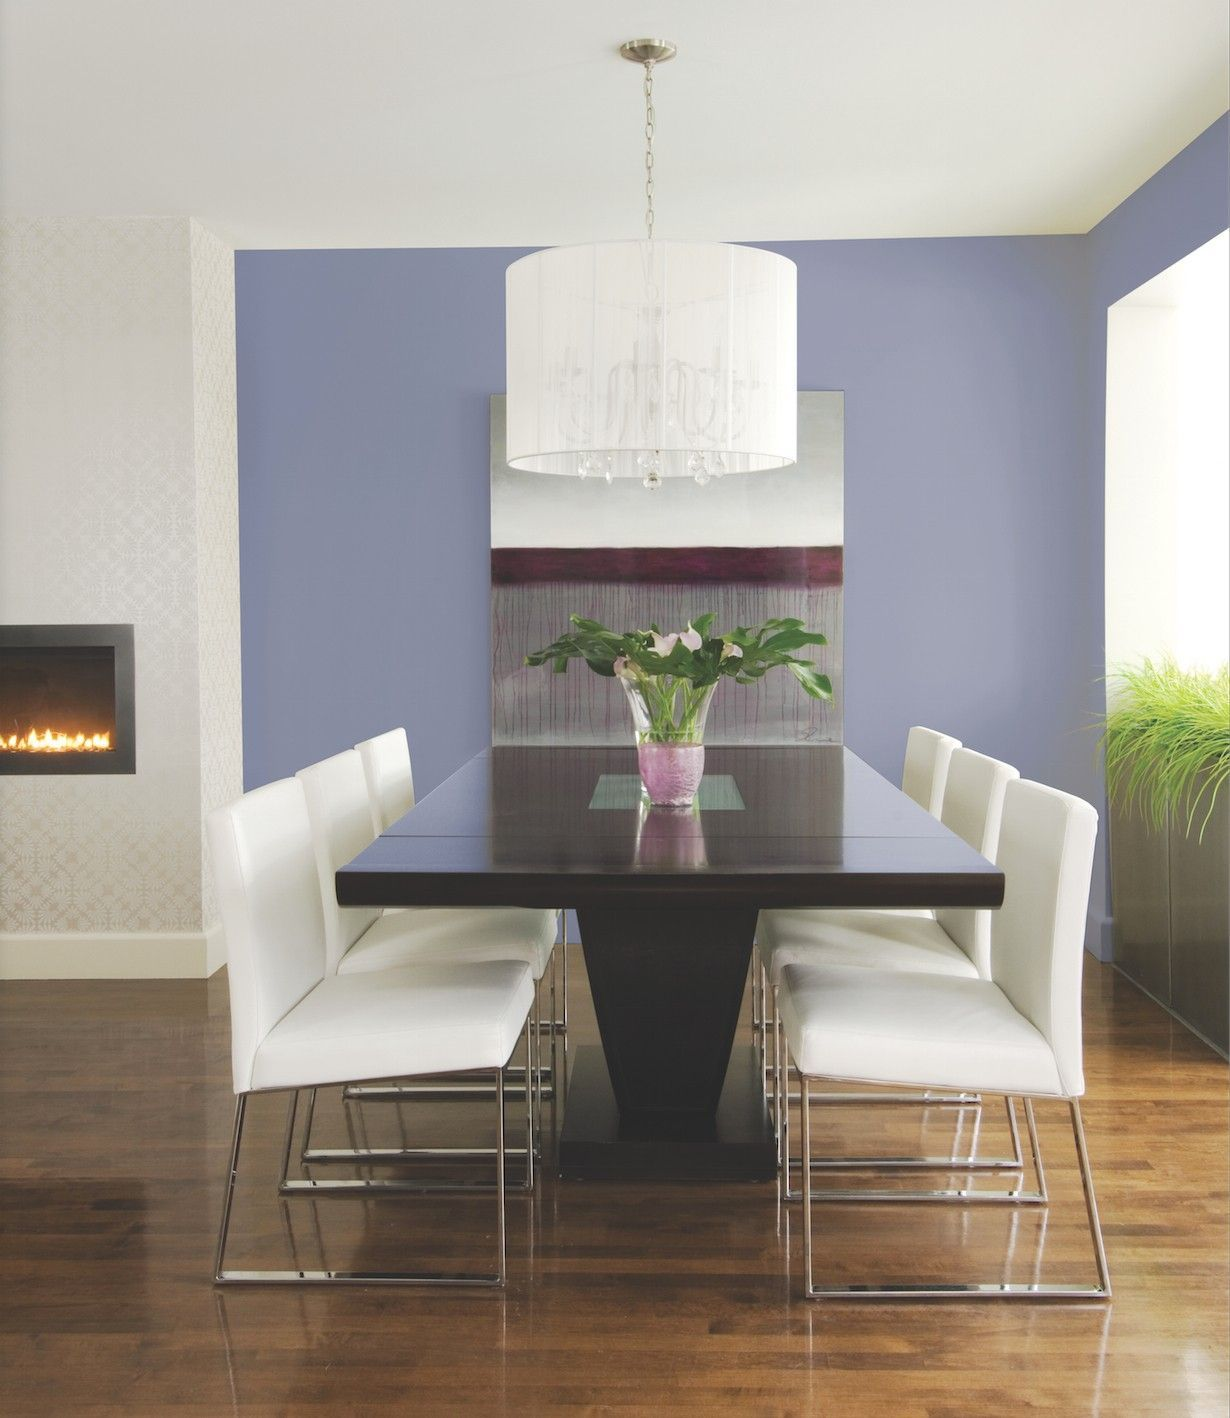 color design ideas interior schemes secrets try on interior wall colors ideas id=30393